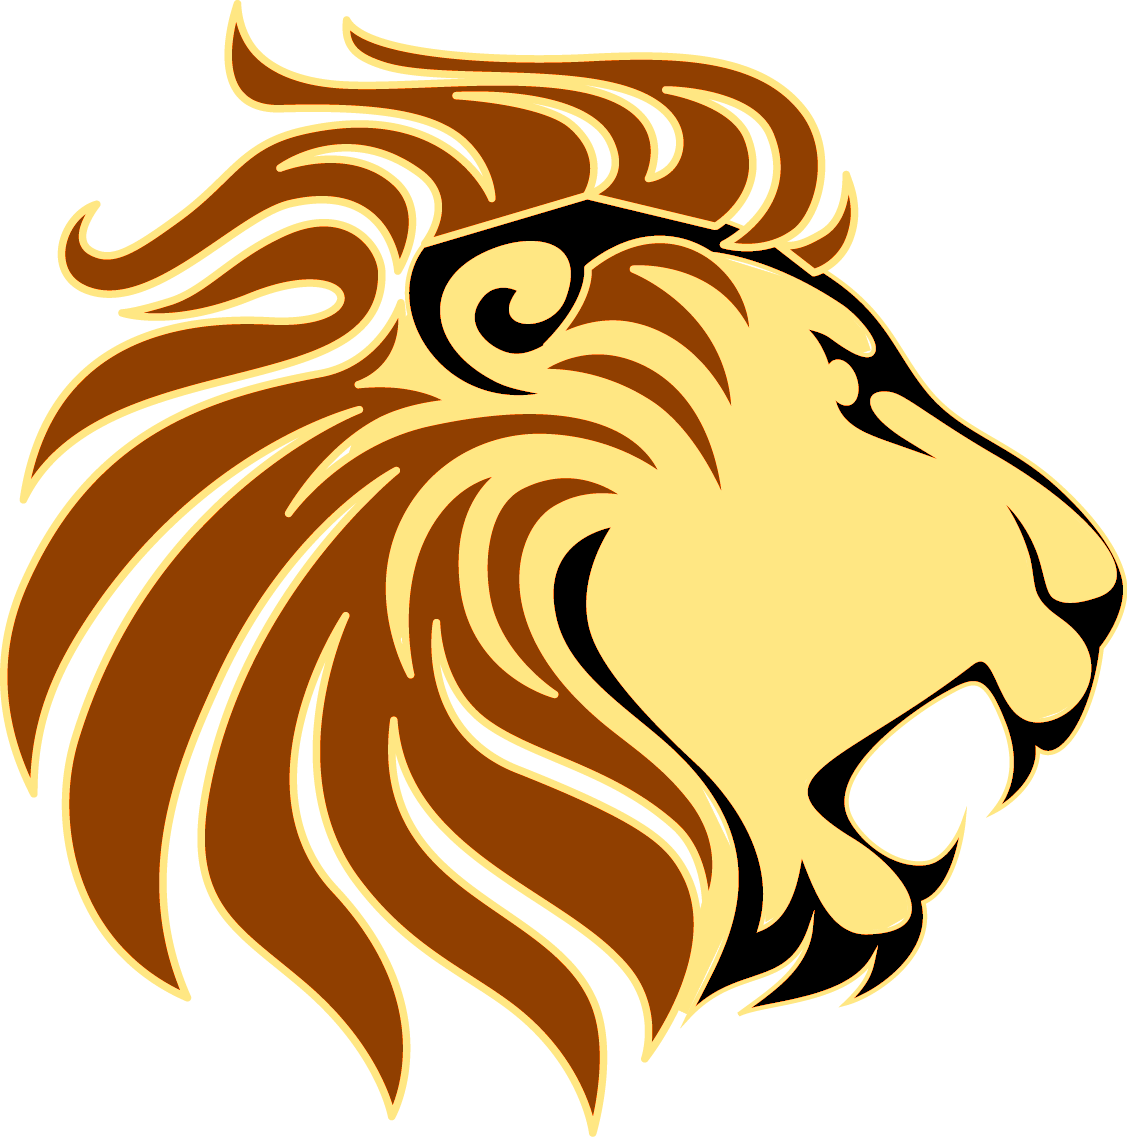 1000+ images about Lion head on Pinterest.